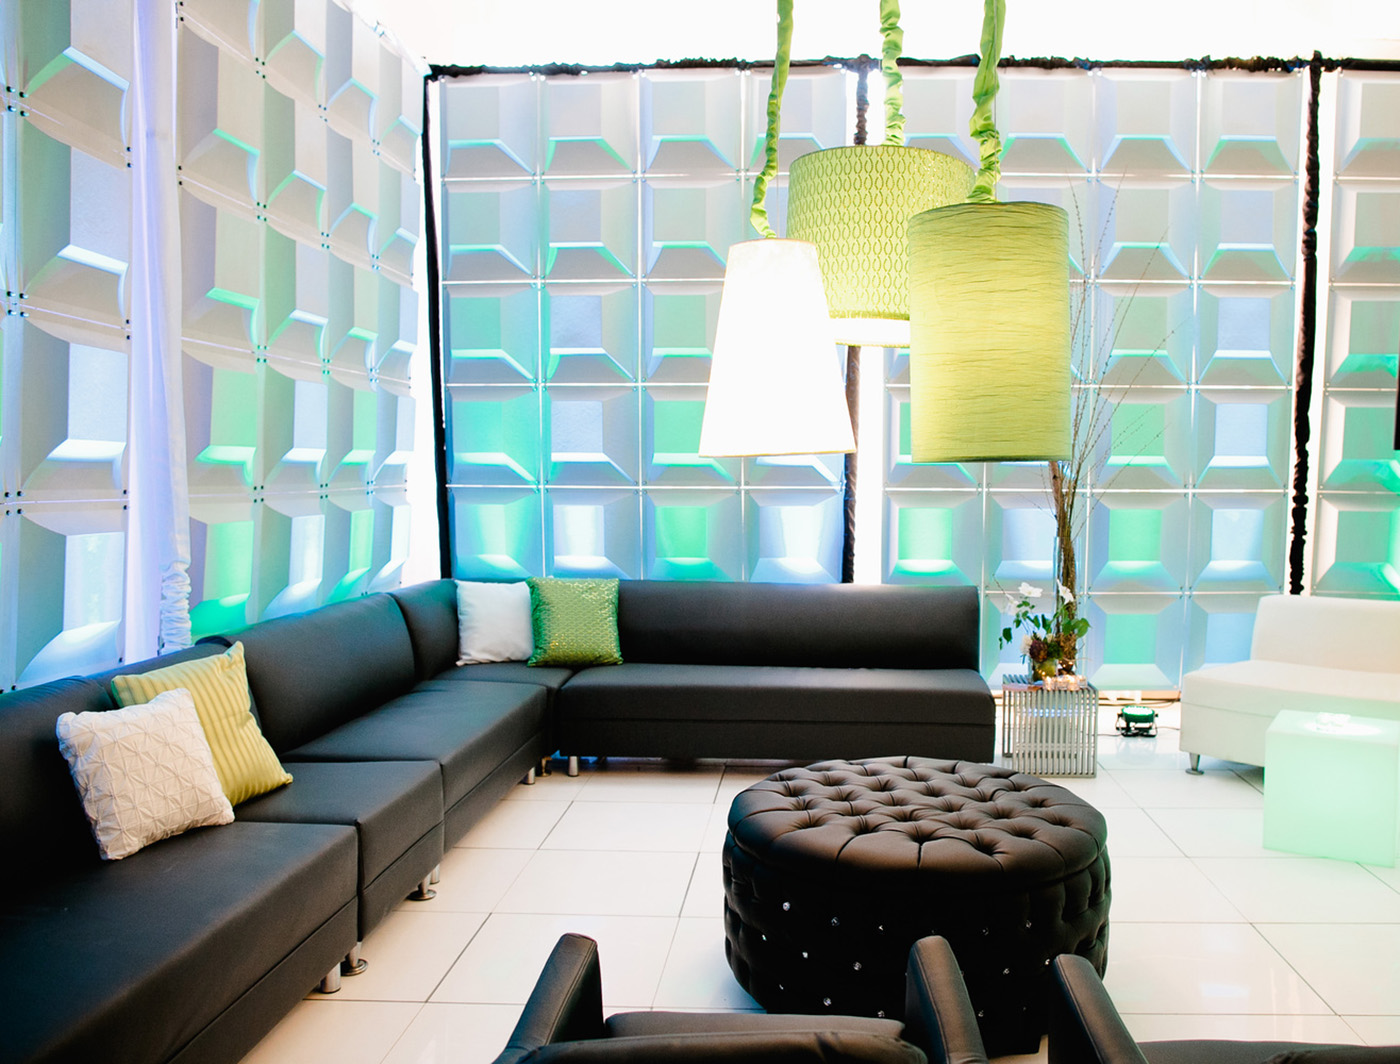 Chiclet creates a great lounge vibe